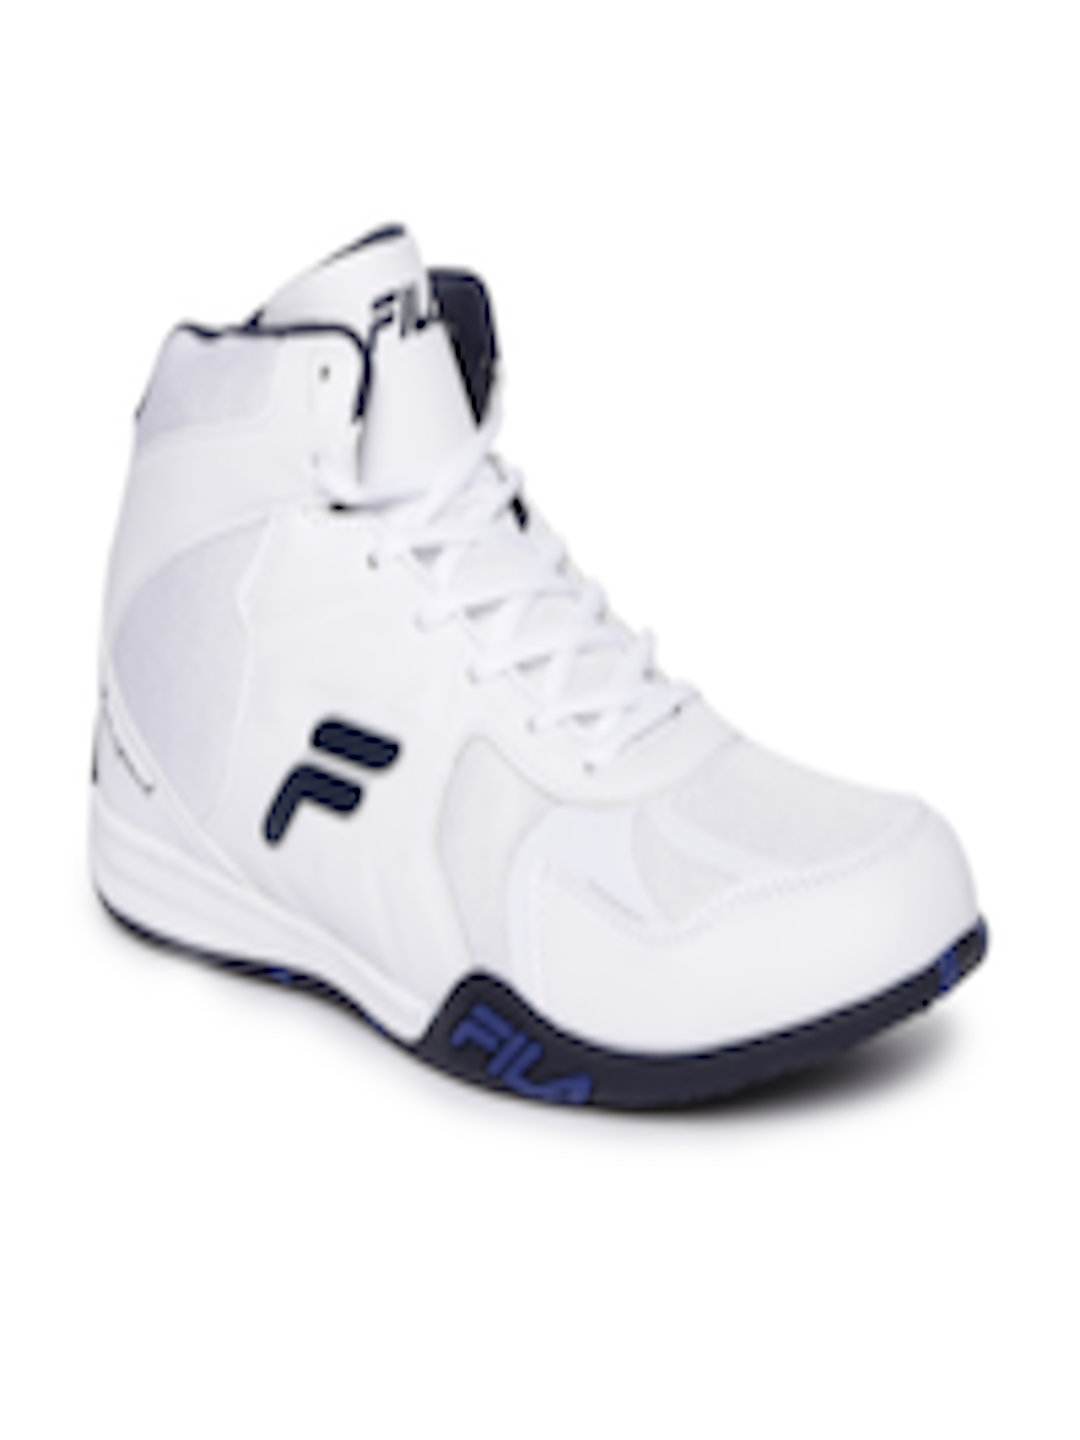 Buy FILA Men White Solid Mesh Mid Top Dynamo Sneakers Footwear for Men